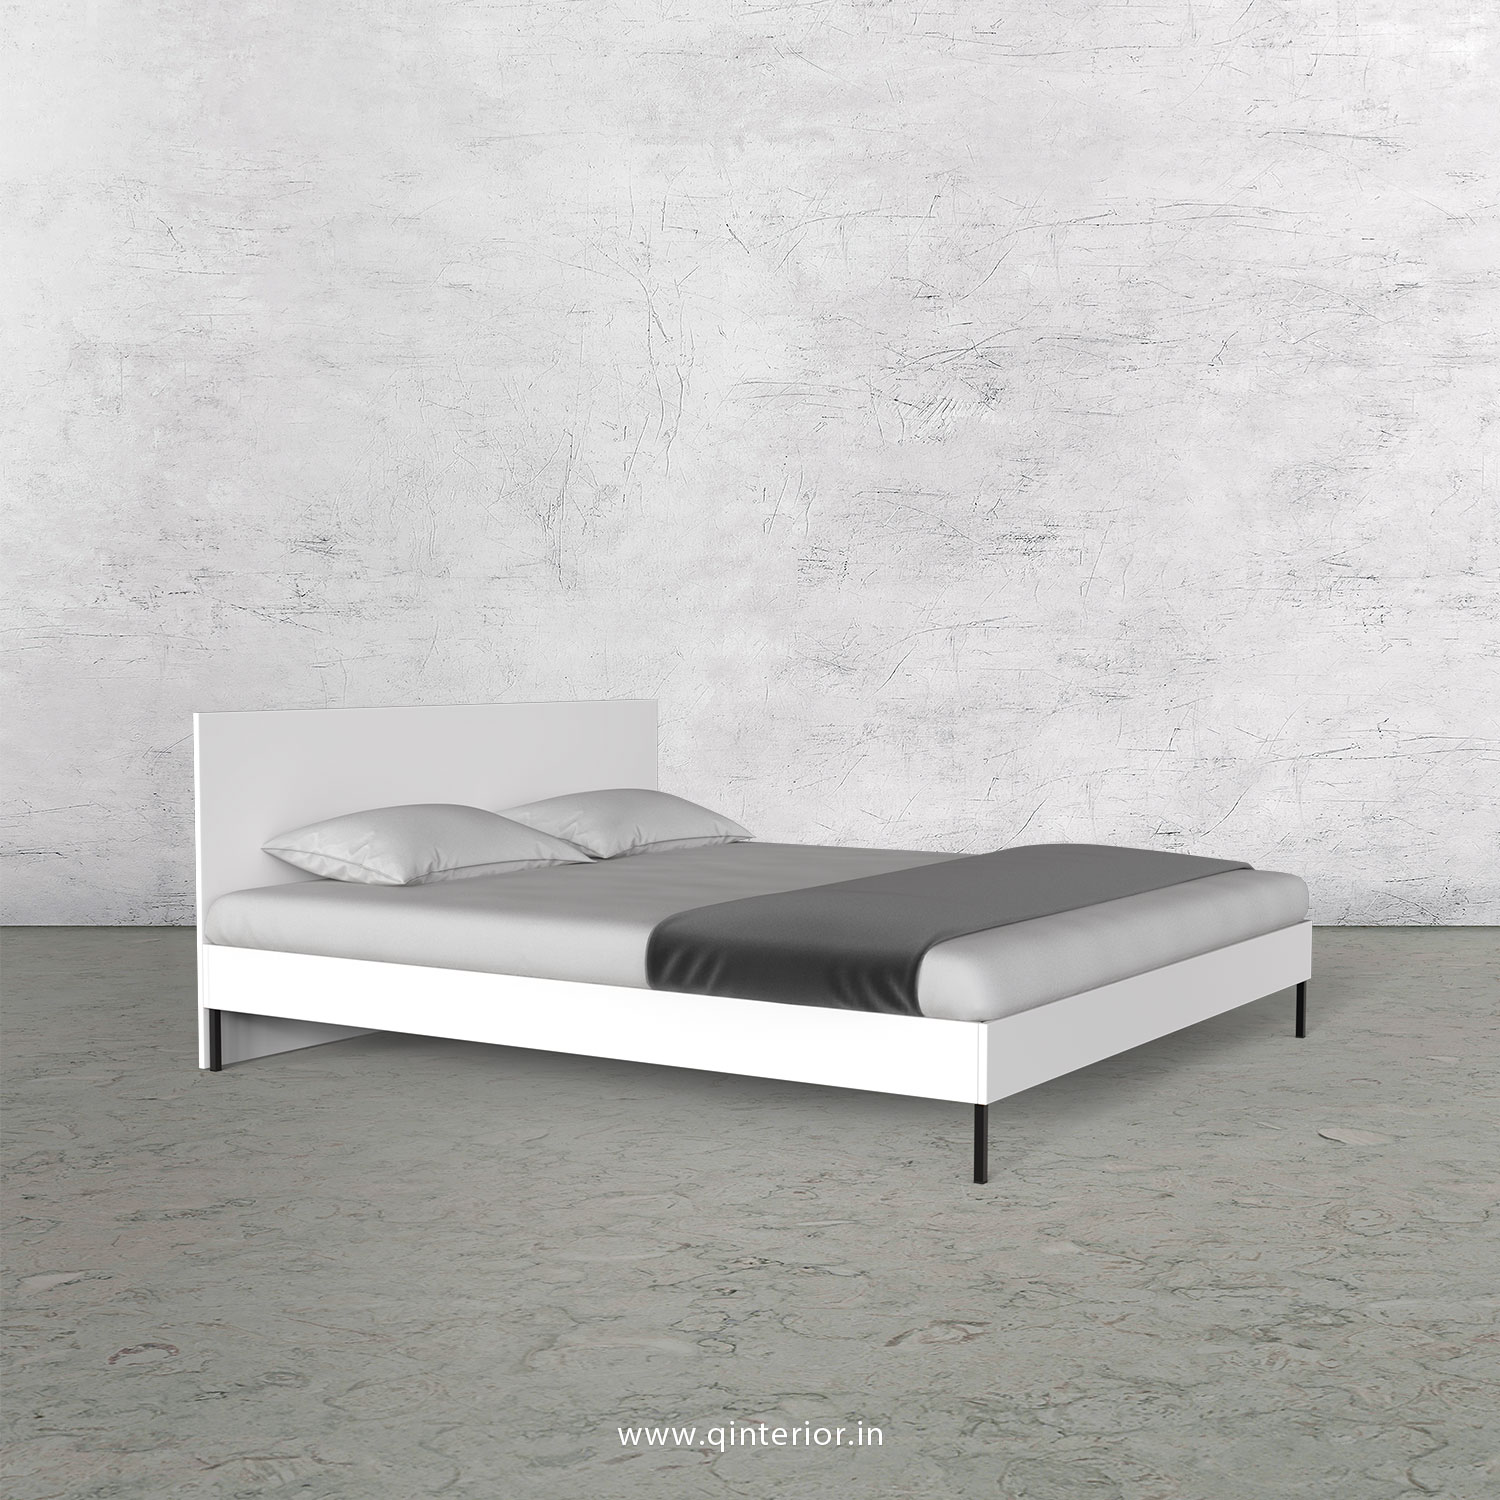 Stable Queen Size Bed in White Finish - QBD105 C4